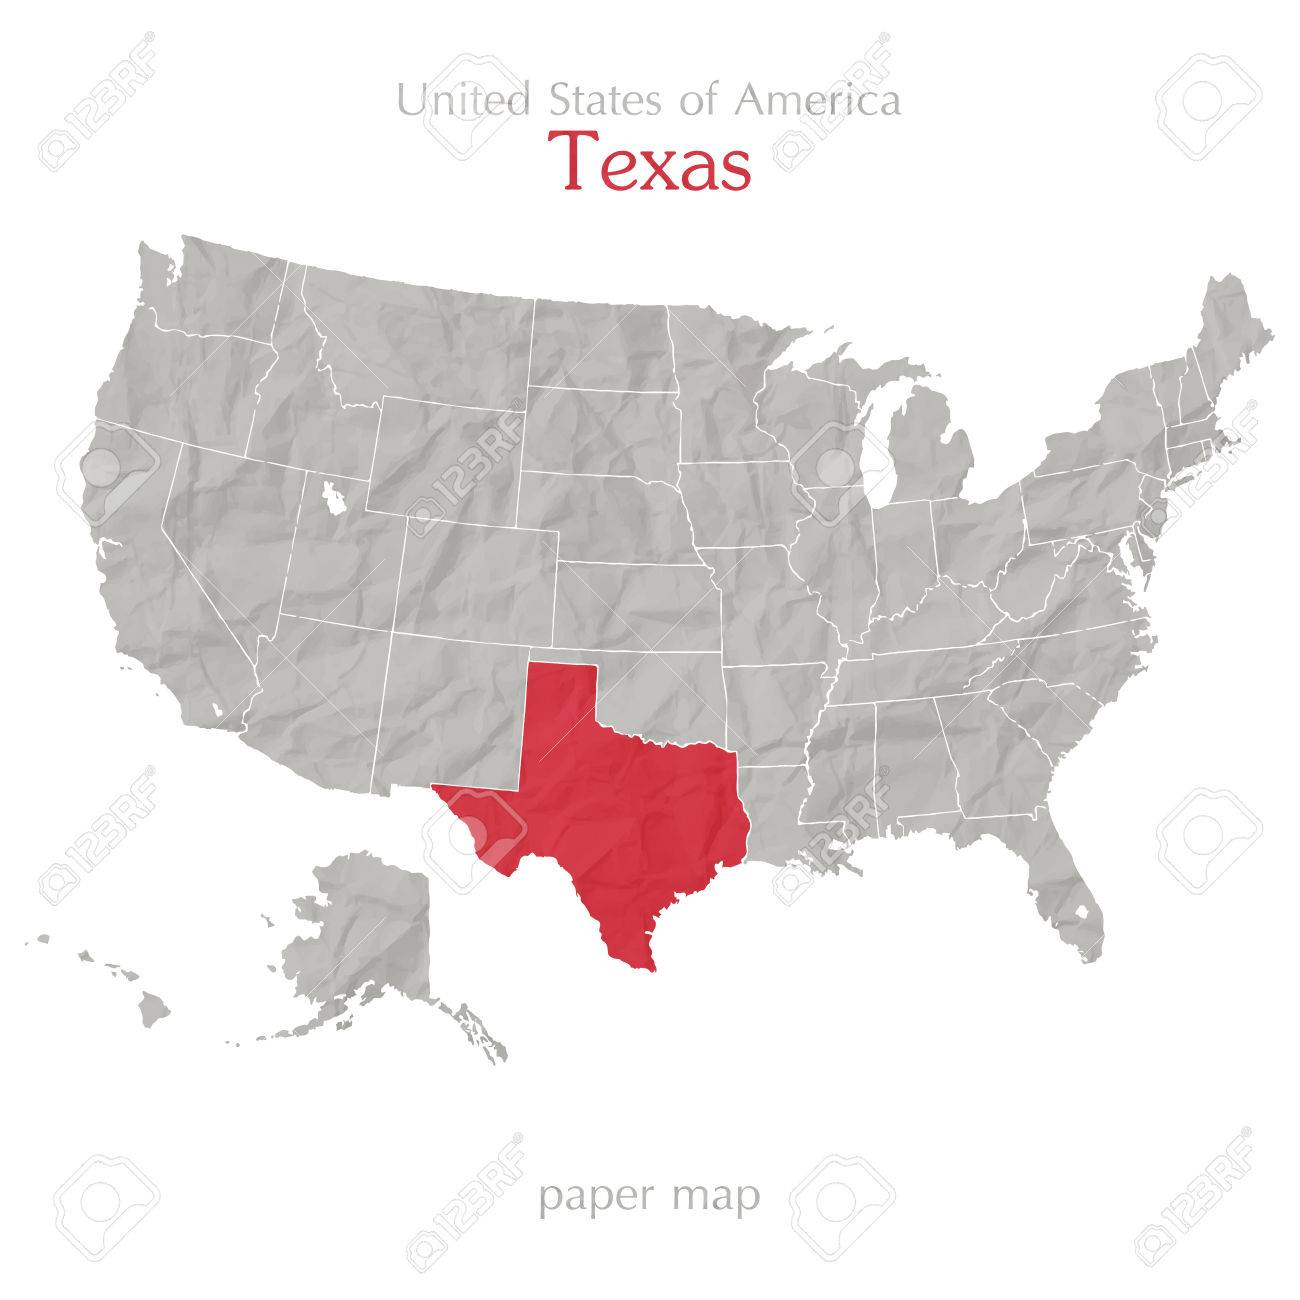 Map Of America Texas.United States Of America Map And Texas Territory On Paper Background